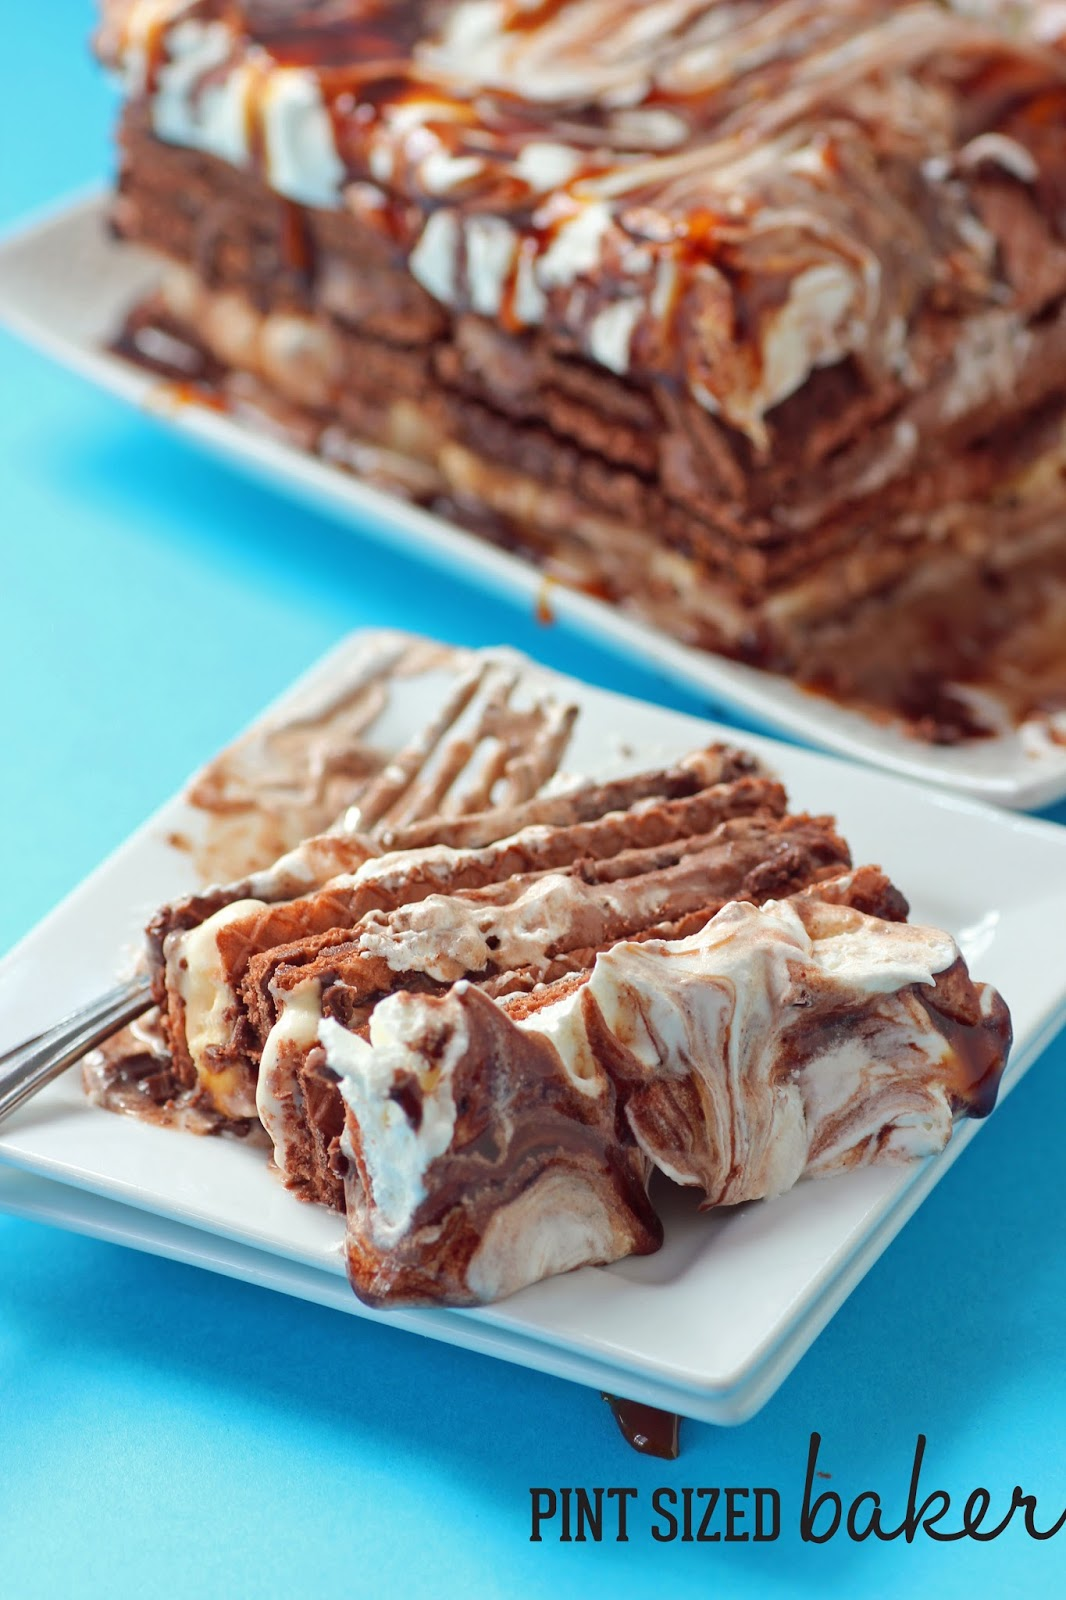 A chocolate wafer icebox cake on a blue background